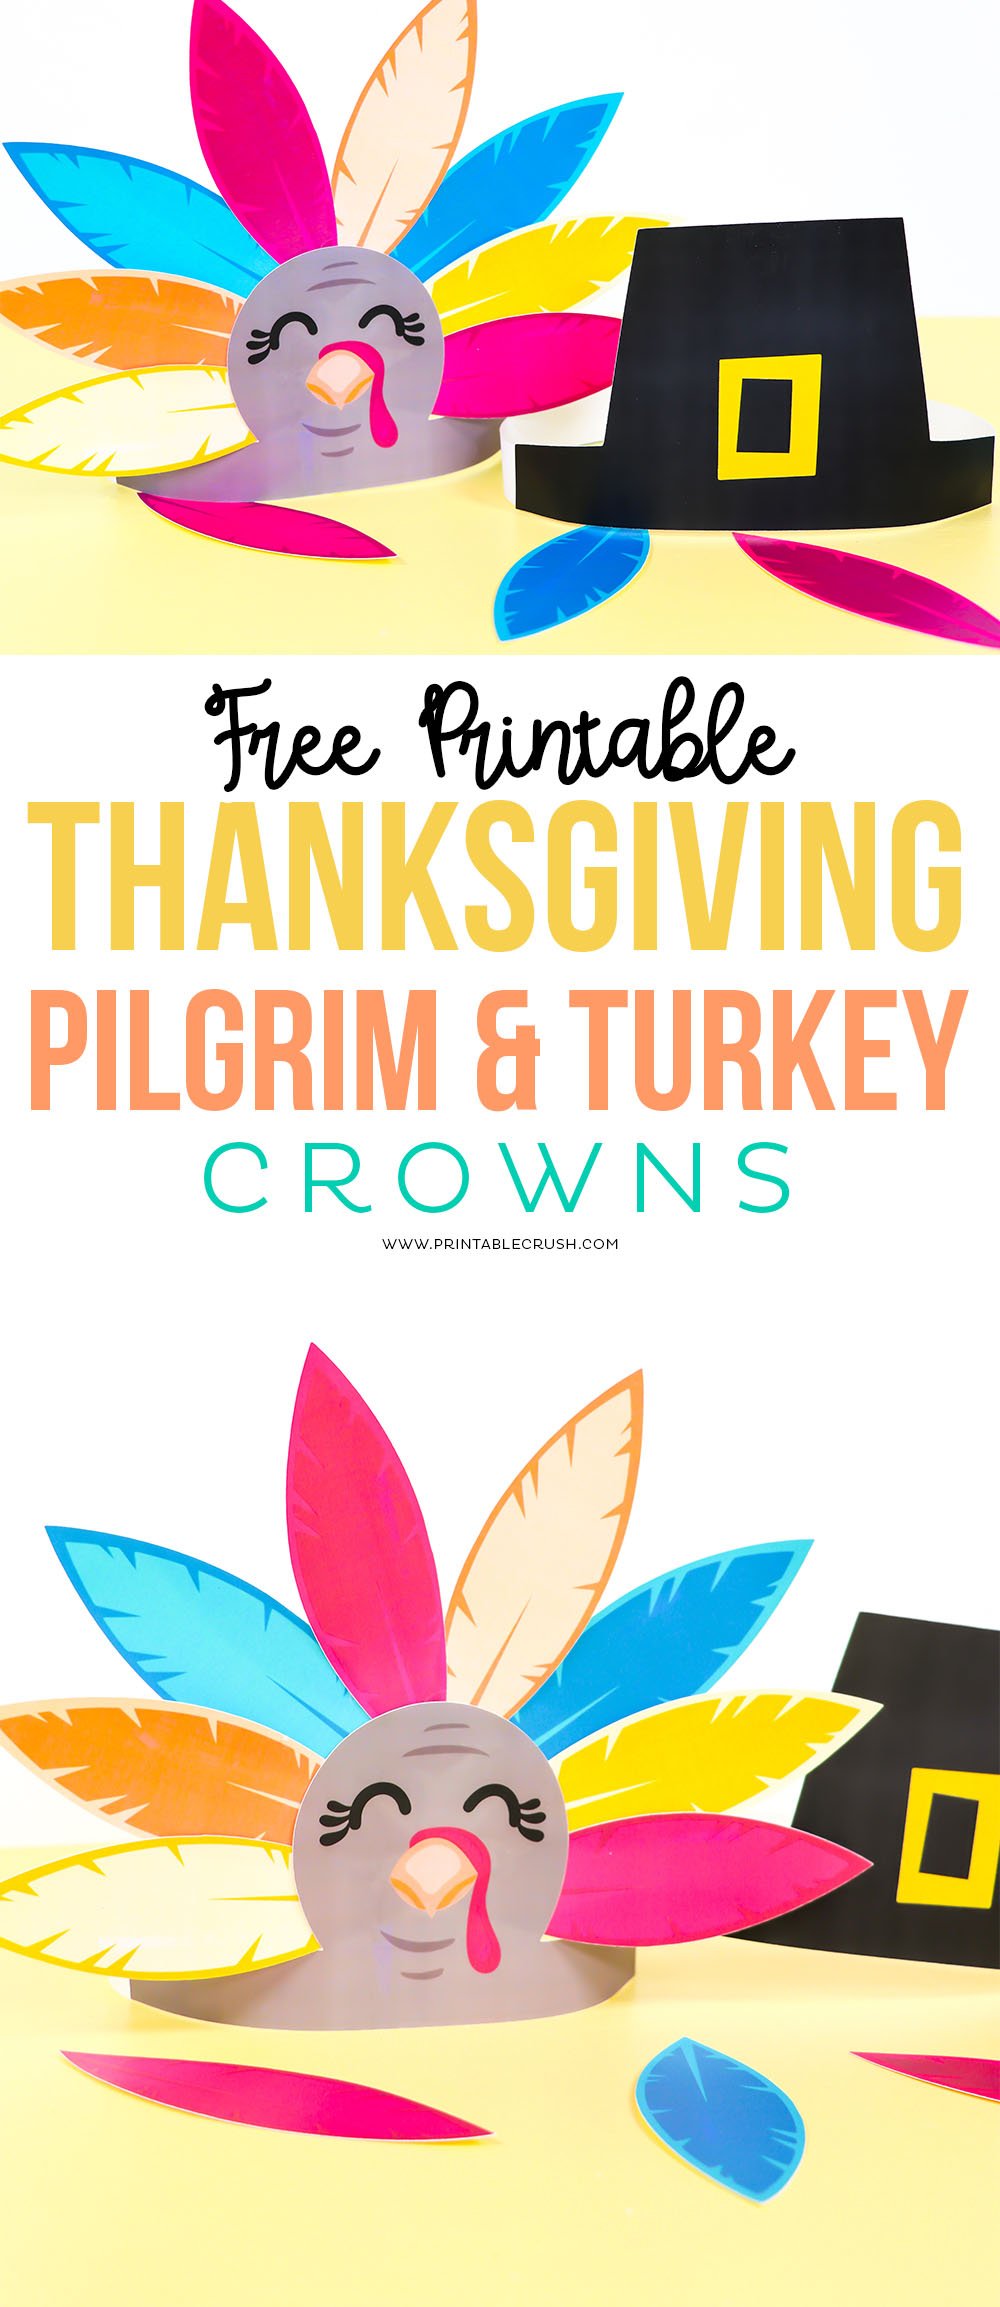 Free Turkey Crown and Pilgrim Crown Printable #thanksgivingprintable #thanksgiving #turkeycrowns #kidthanksgivingcraft #thanksgivingcraft